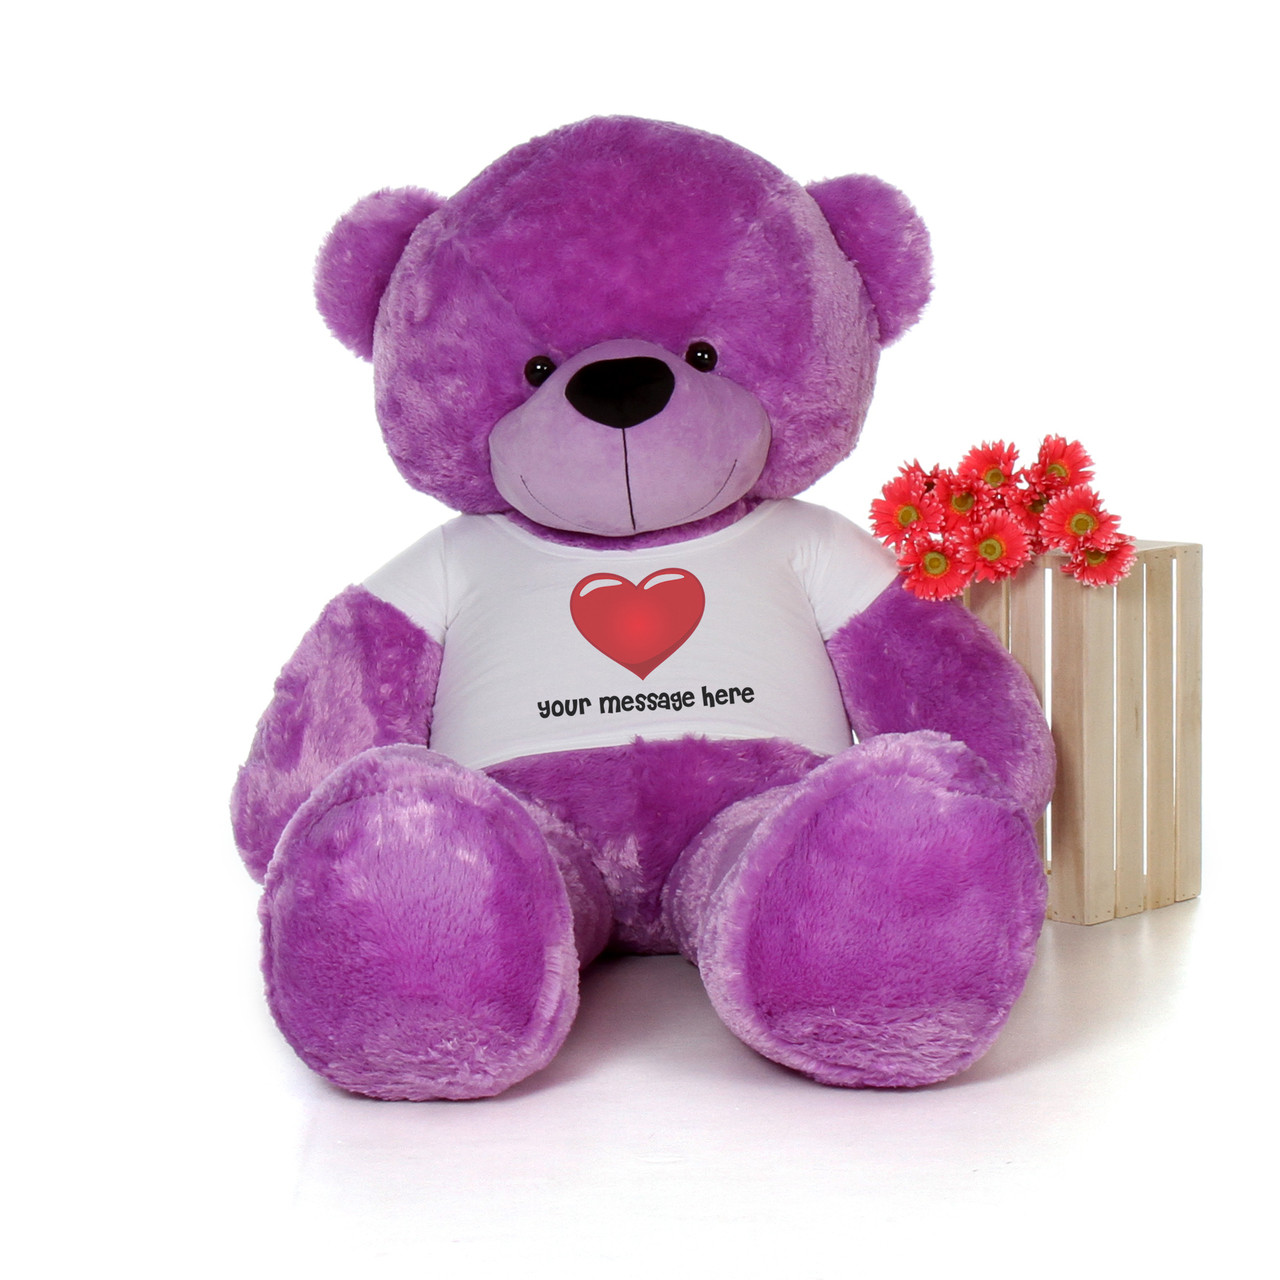 6ft DeeDee Cuddles Purple Giant Teddy in Personalized Red Heart Shirt